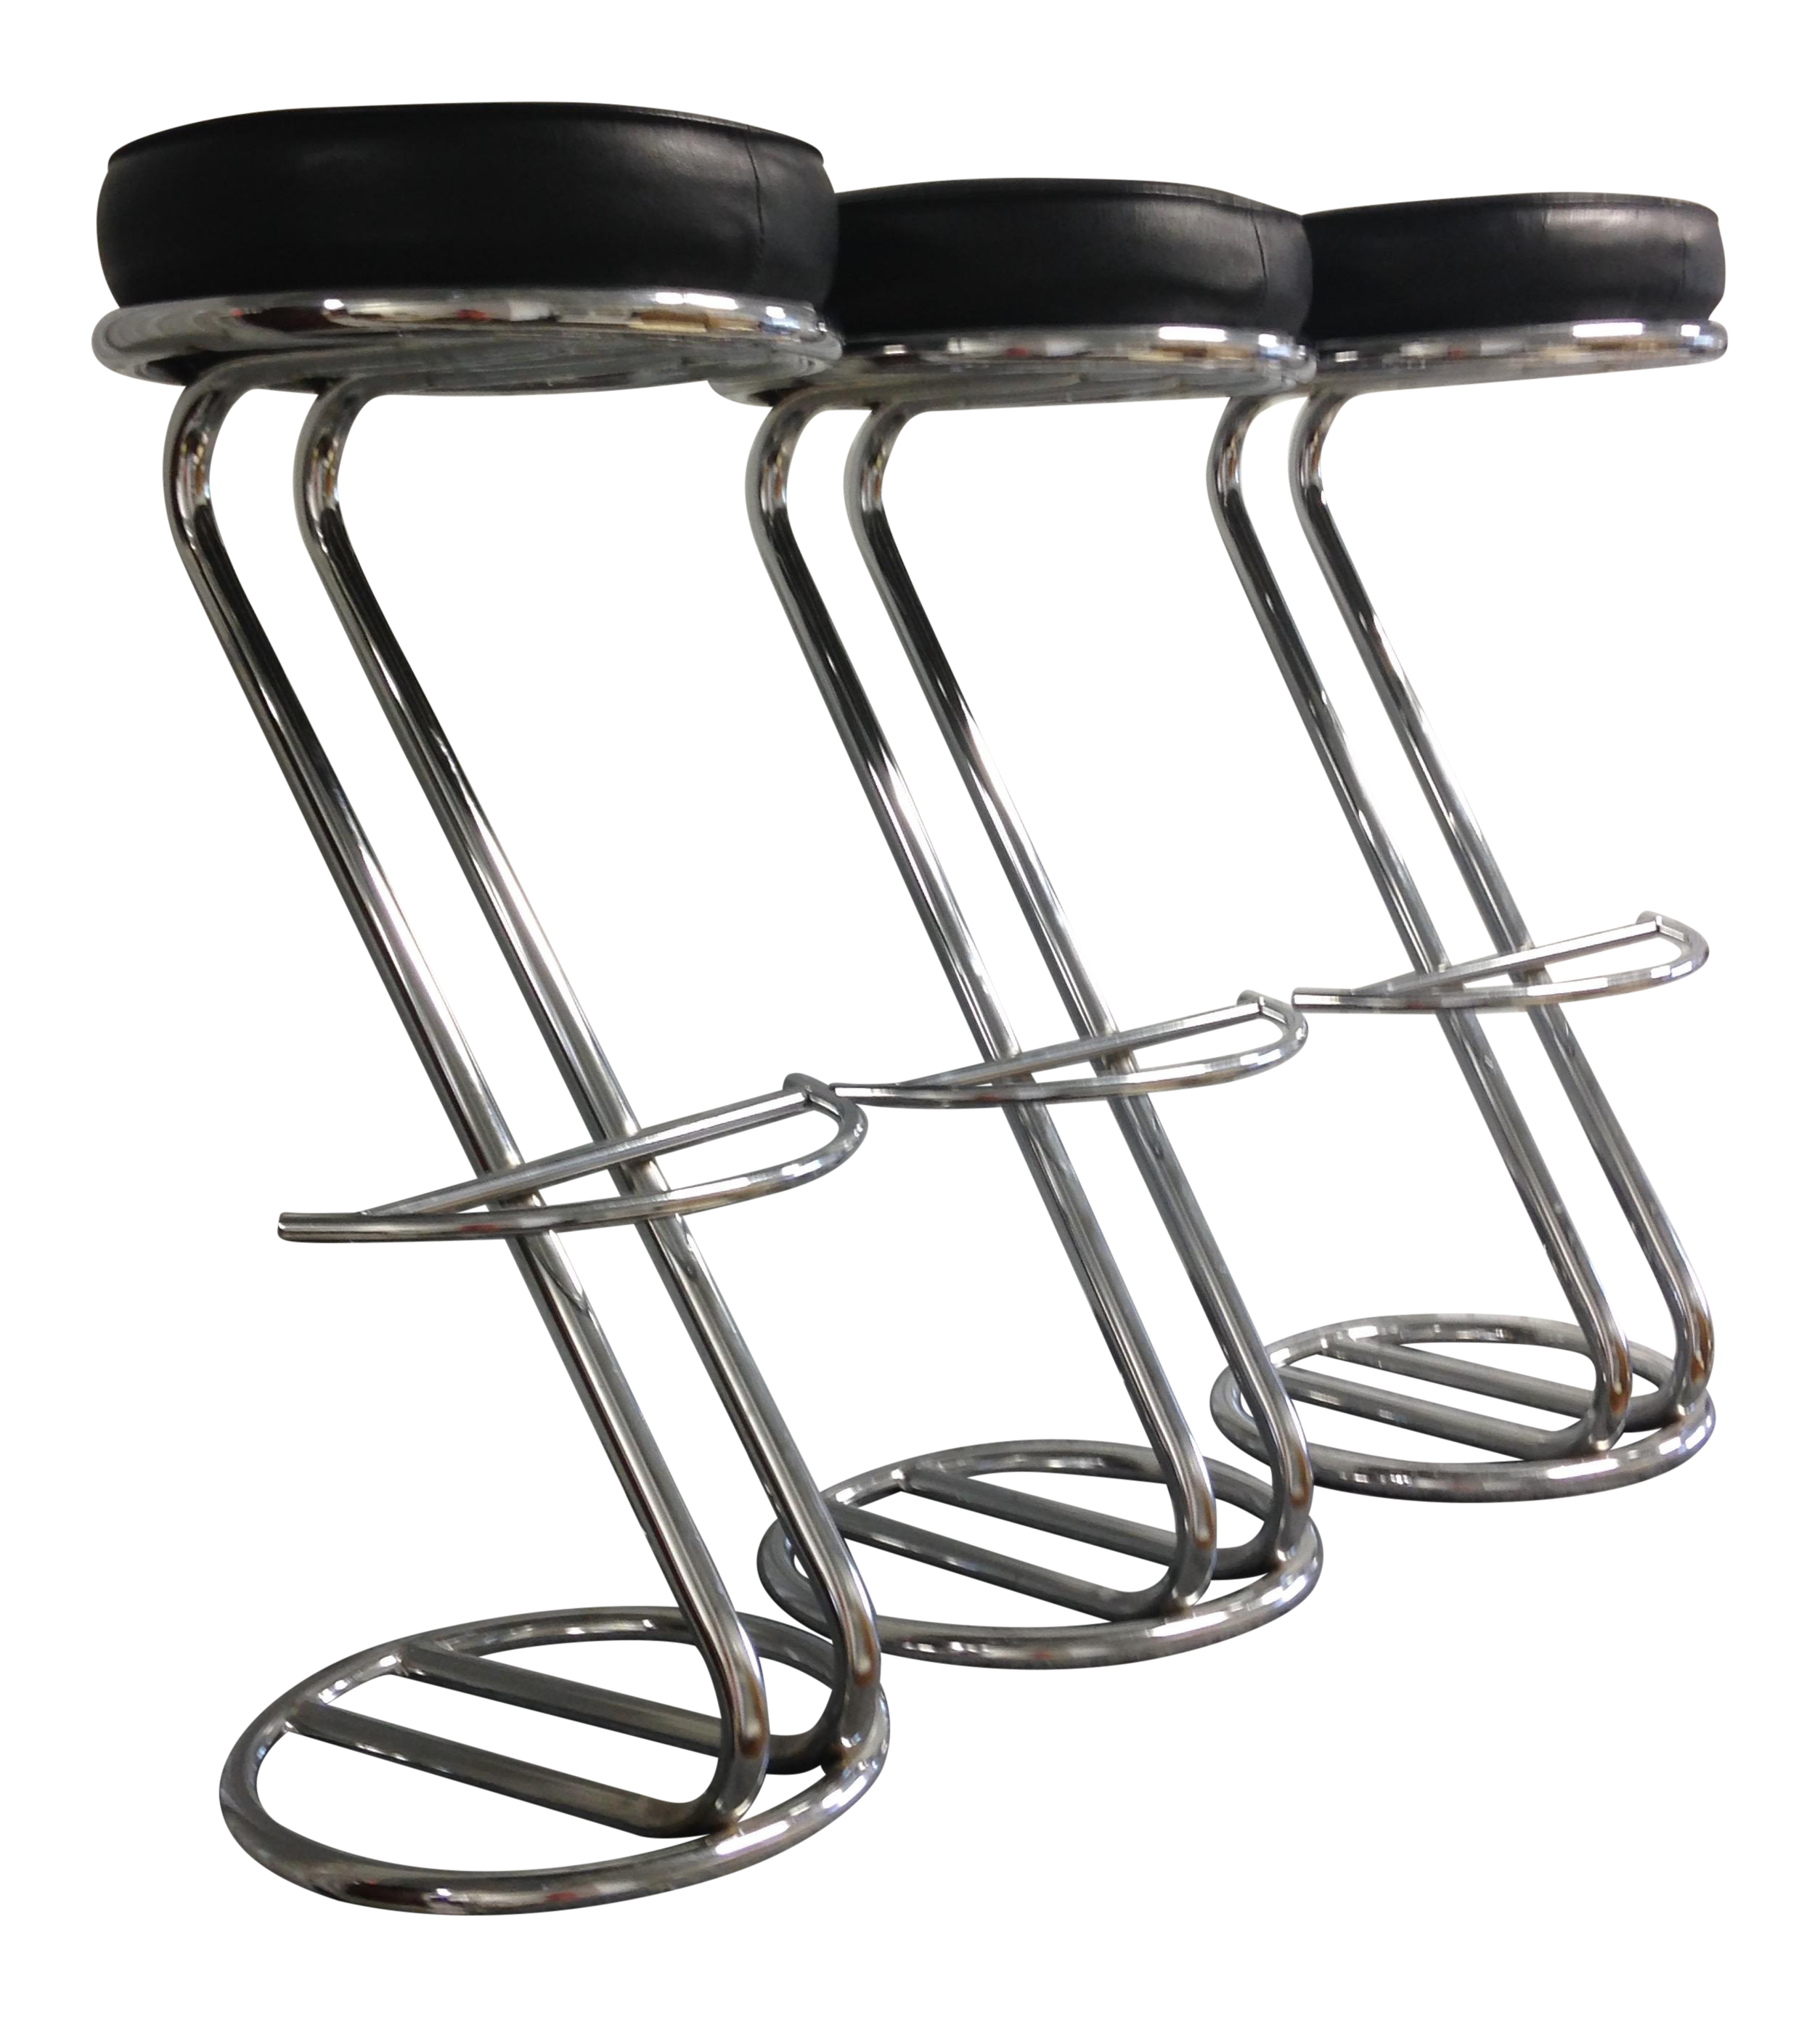 Vintage Art Deco Chrome u0026 Leather Bar Stools - Set of 3  sc 1 st  Chairish & Vintage Art Deco Chrome u0026 Leather Bar Stools - Set of 3 | Chairish islam-shia.org